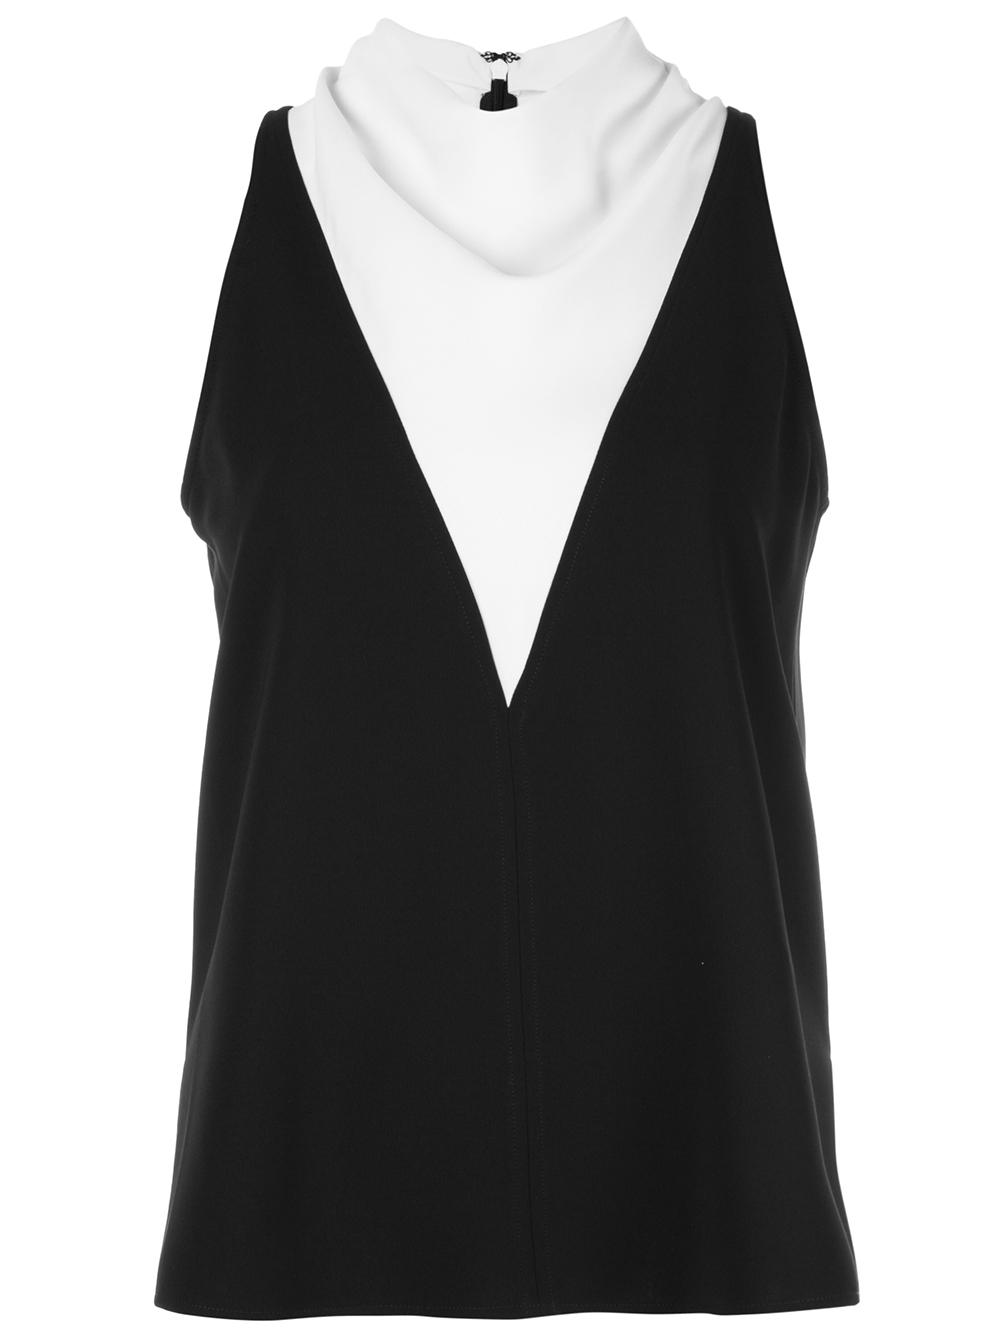 Cate Layered Cowl Neck Top Item # 5TOPS00640